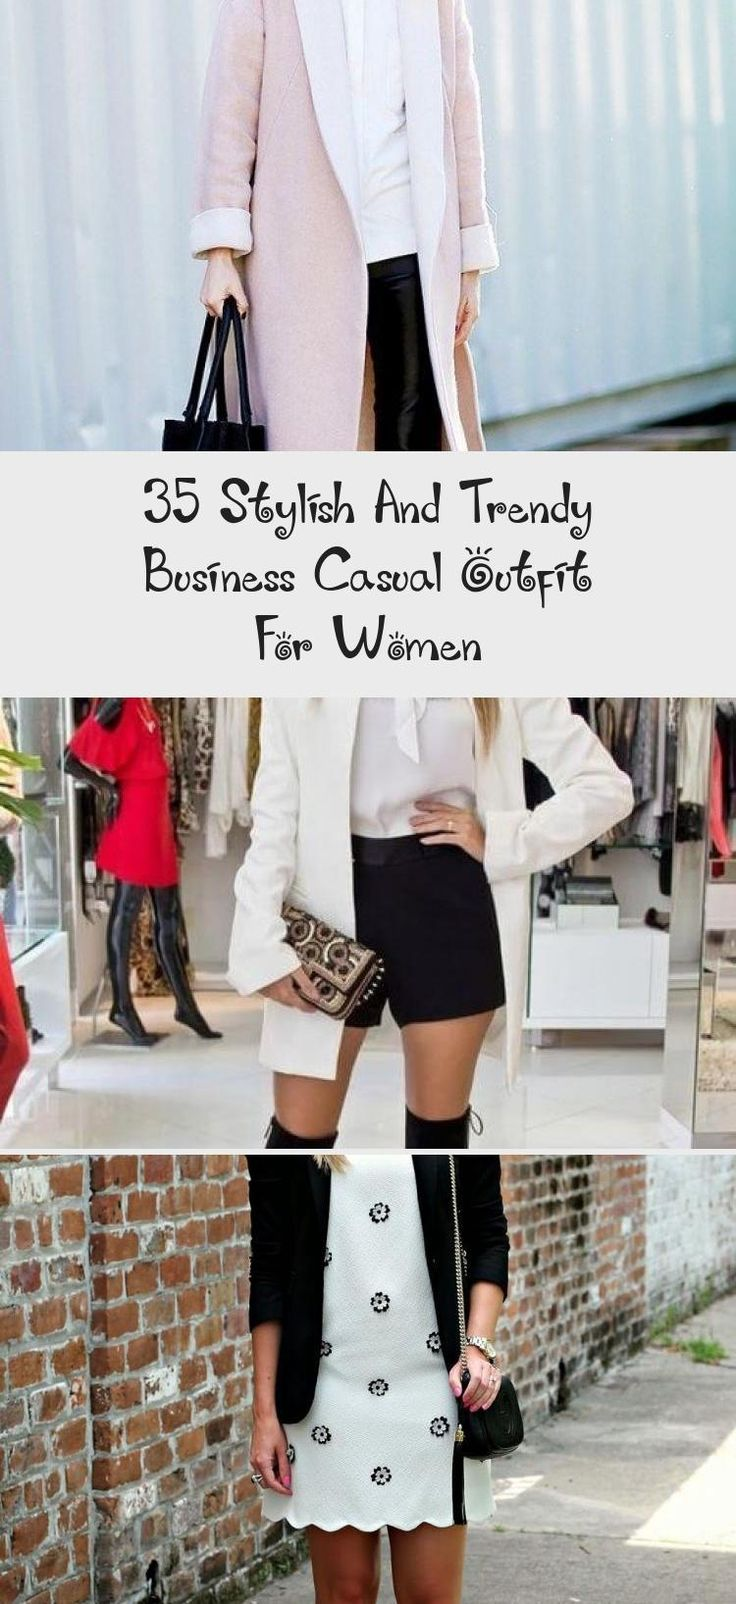 35 Stylish And Trendy Business Casual Outfit For Women